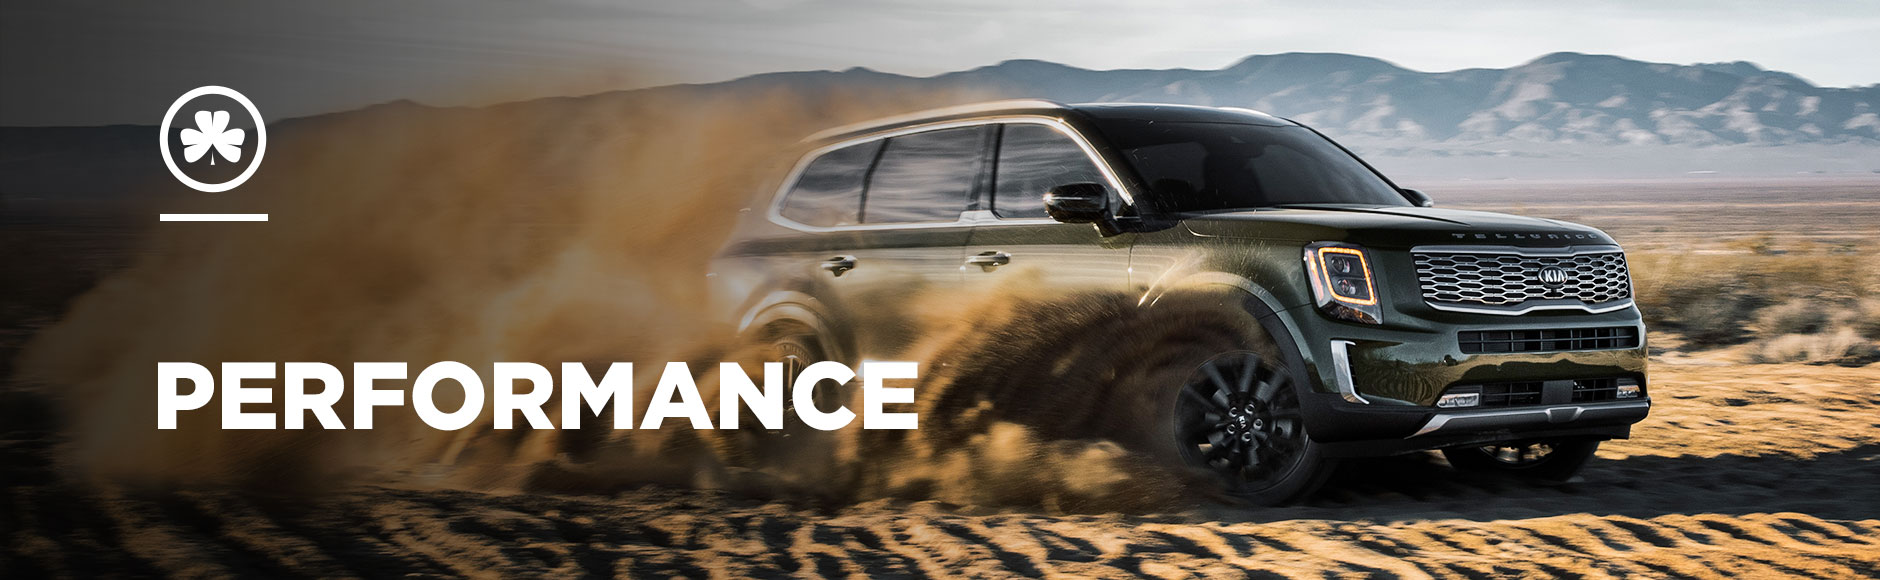 Kia Telluride Performance Banner - spinning out in sand